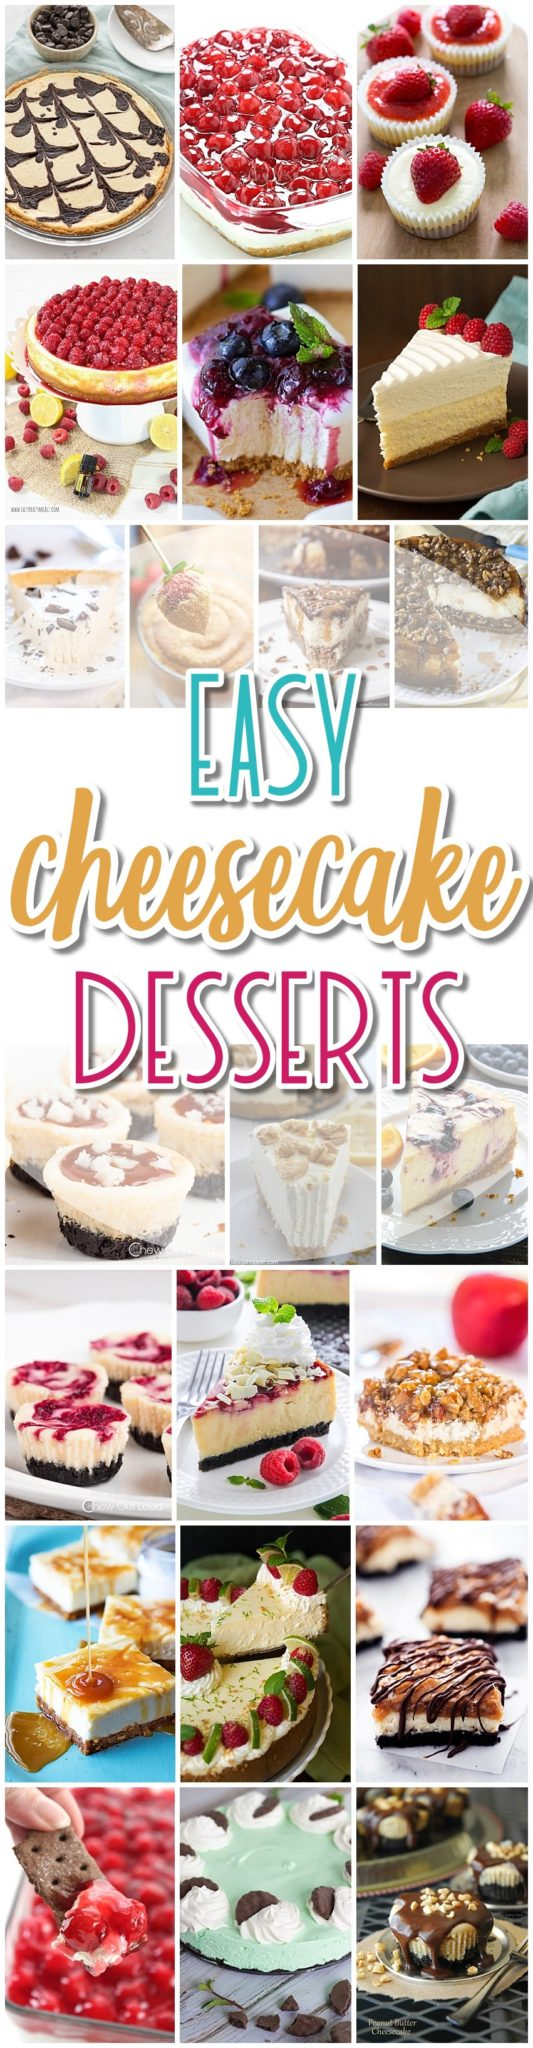 The BEST Cheesecake Recipes - Favorite Easy Party Desserts for Easter, Mother's Day Brunch or any celebration - Dreaming in DIY #cheesecake #desserts #cheesecakerecipes #holidayfood #easycheesecakerecipes #simplecheesecake #cheesecakes #easterdesserts #mothersdaydesserts #brunchrecipes #holidaydesserts #easydesserts